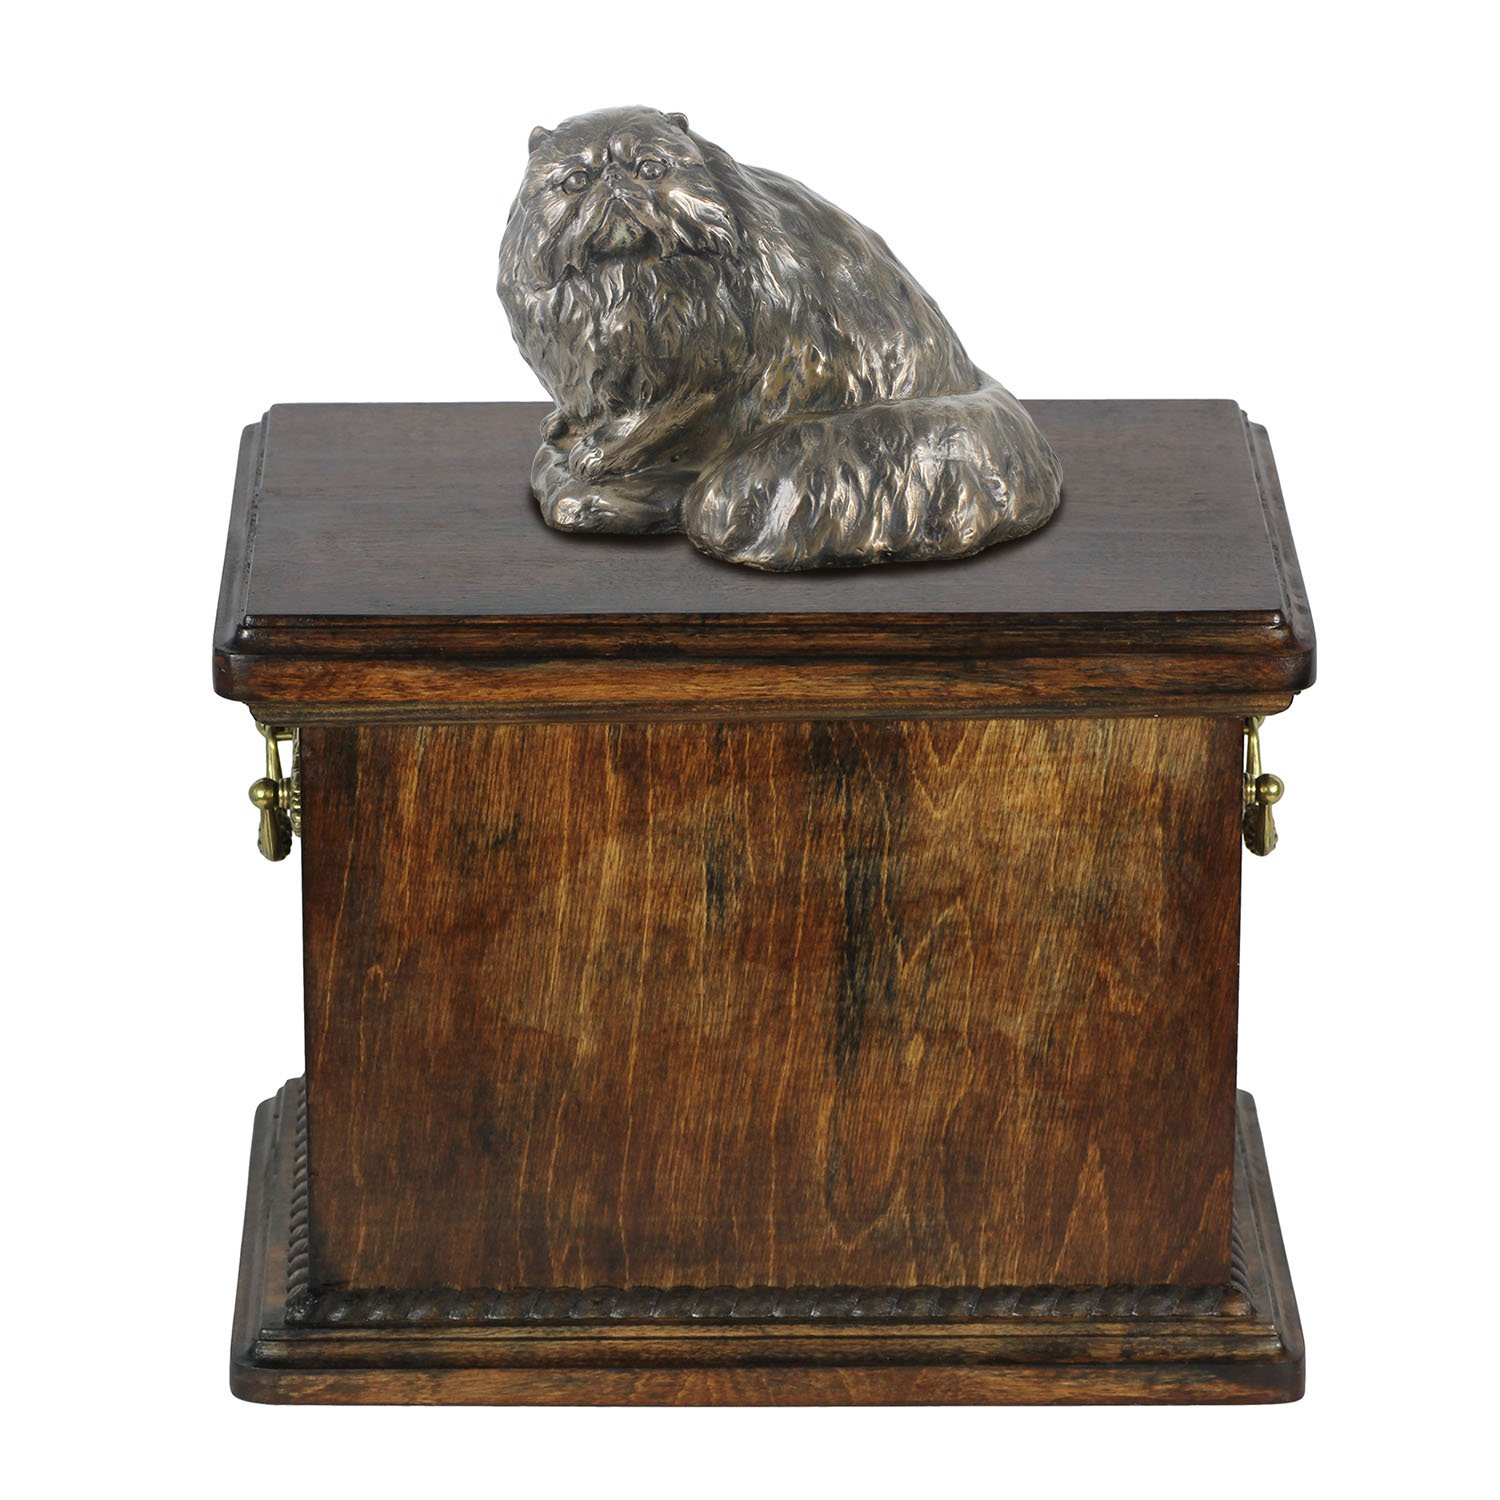 Persian Cat, memorial, urn for cat's ashes, with cat statue, ArtDog